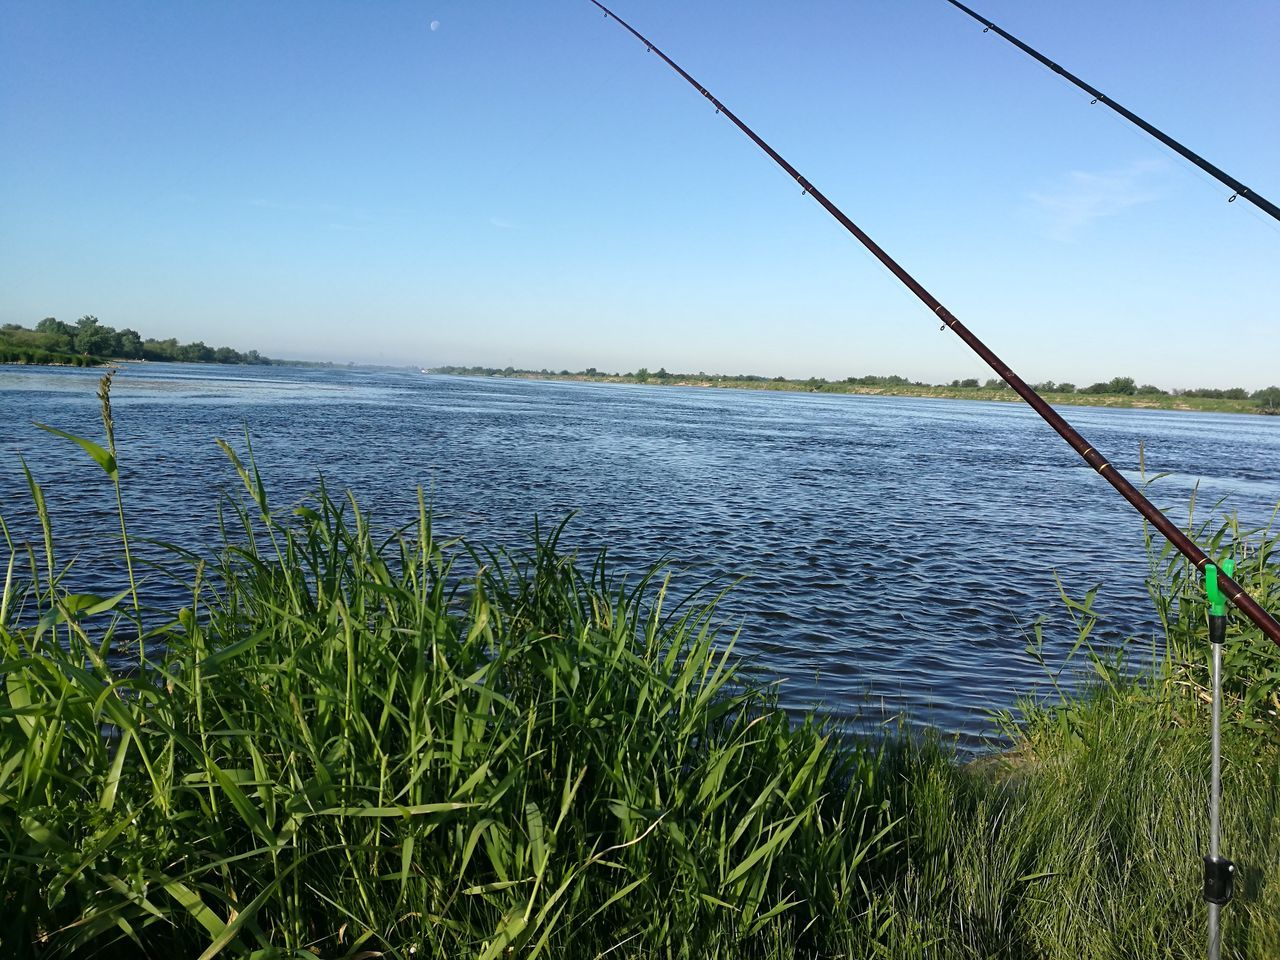 Water Lake Fishing Tackle Fishing Net Nature Fishing Day Outdoors Cable No People Scenics Grass Sky Beauty In Nature Nautical Vessel Clear Sky